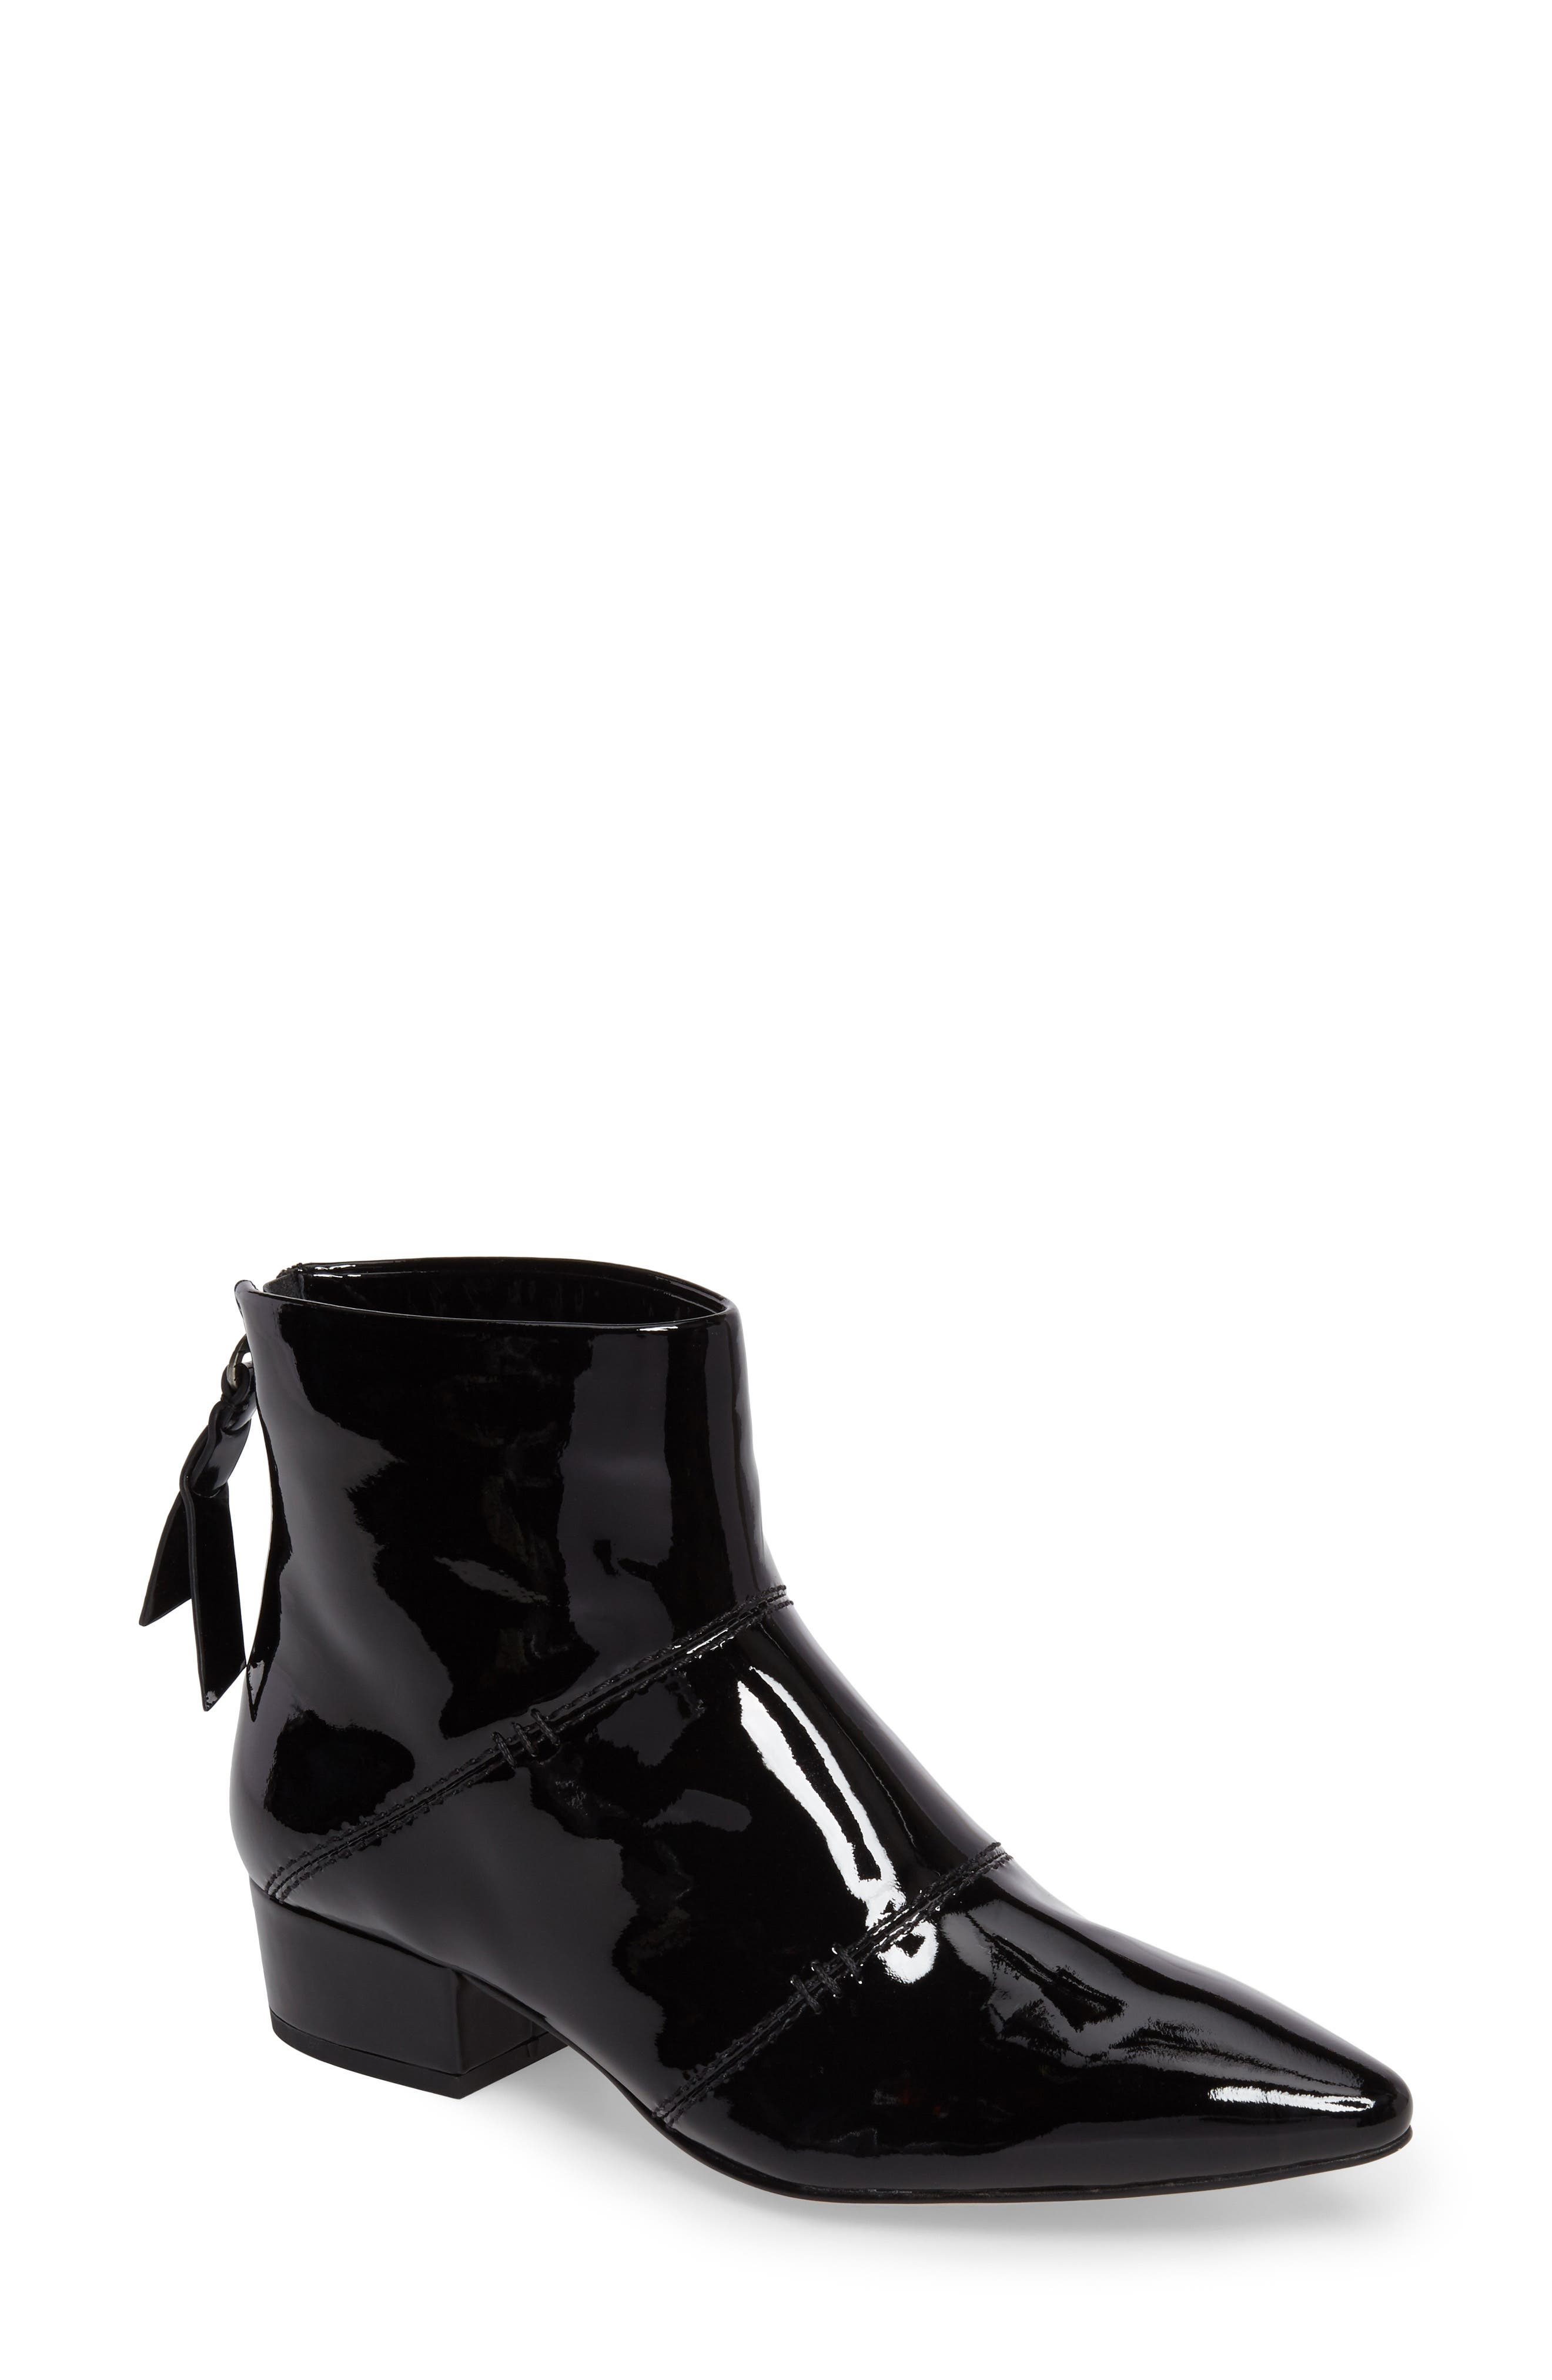 Rina Bootie,                             Main thumbnail 1, color,                             Black Patent